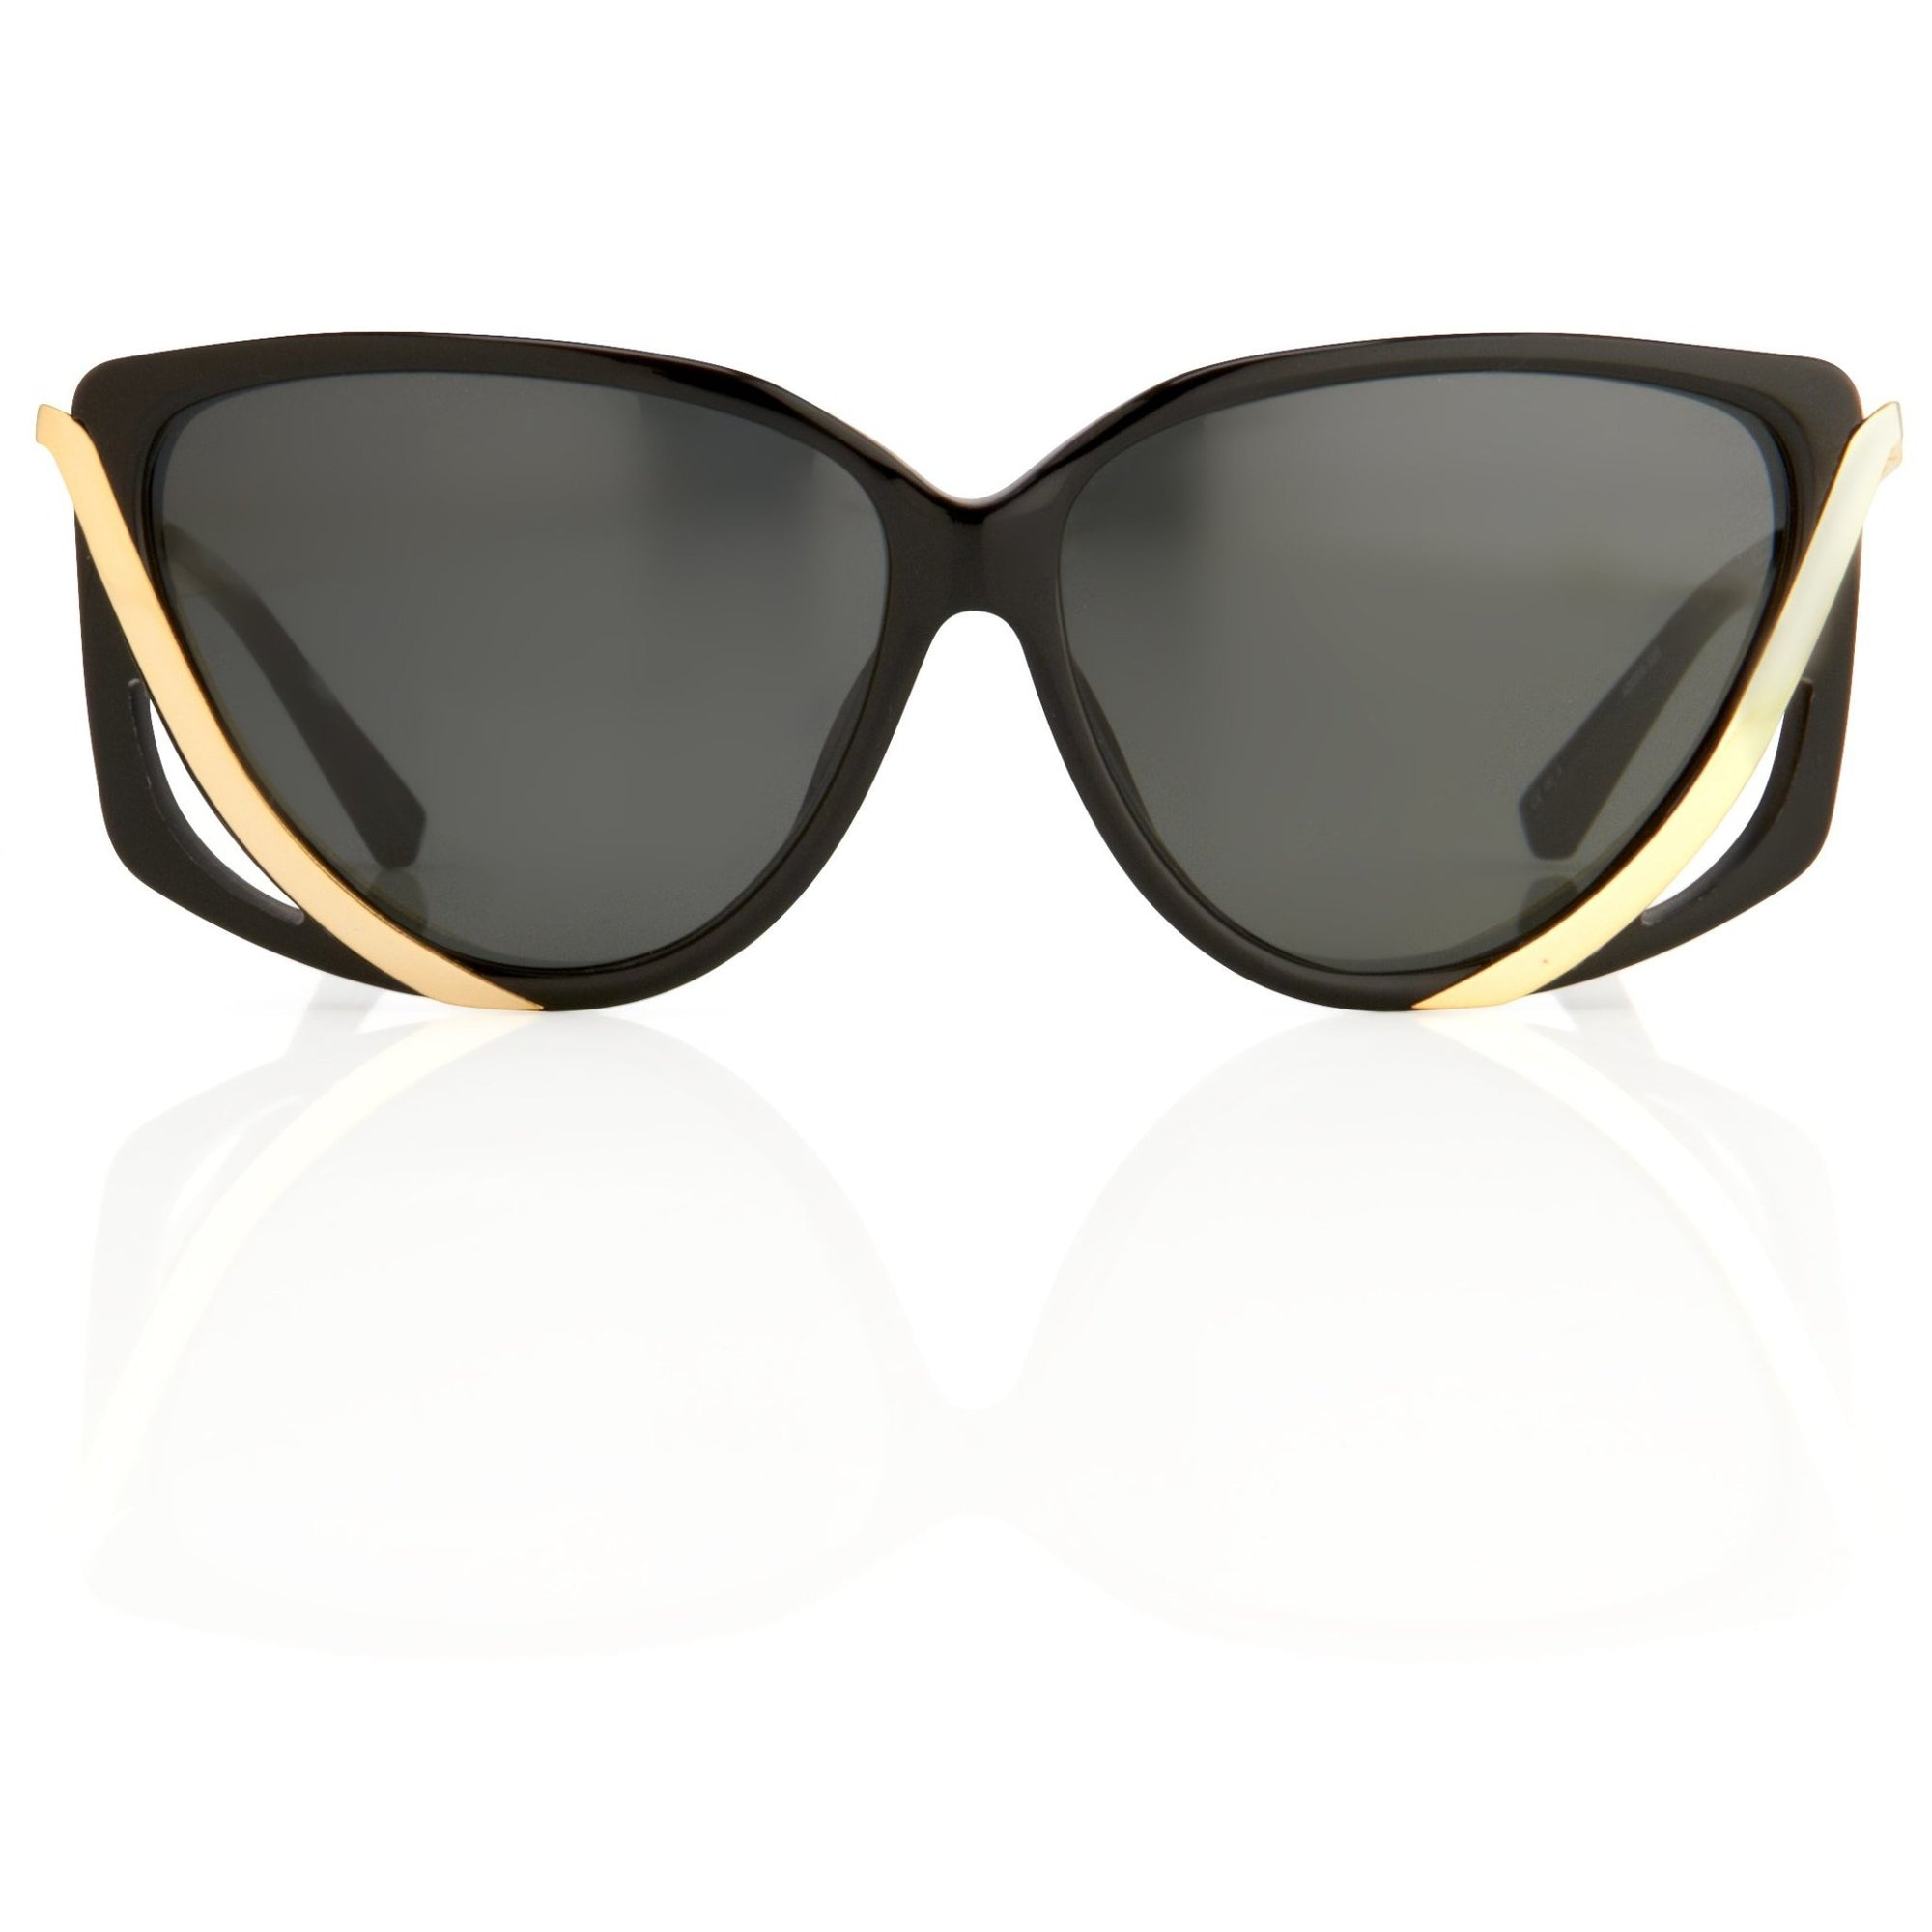 Prabal Gurung Sunglasses Rectangular Black Cut Out With Grey Category 3 Lenses PG4C1SUN - Watches & Crystals